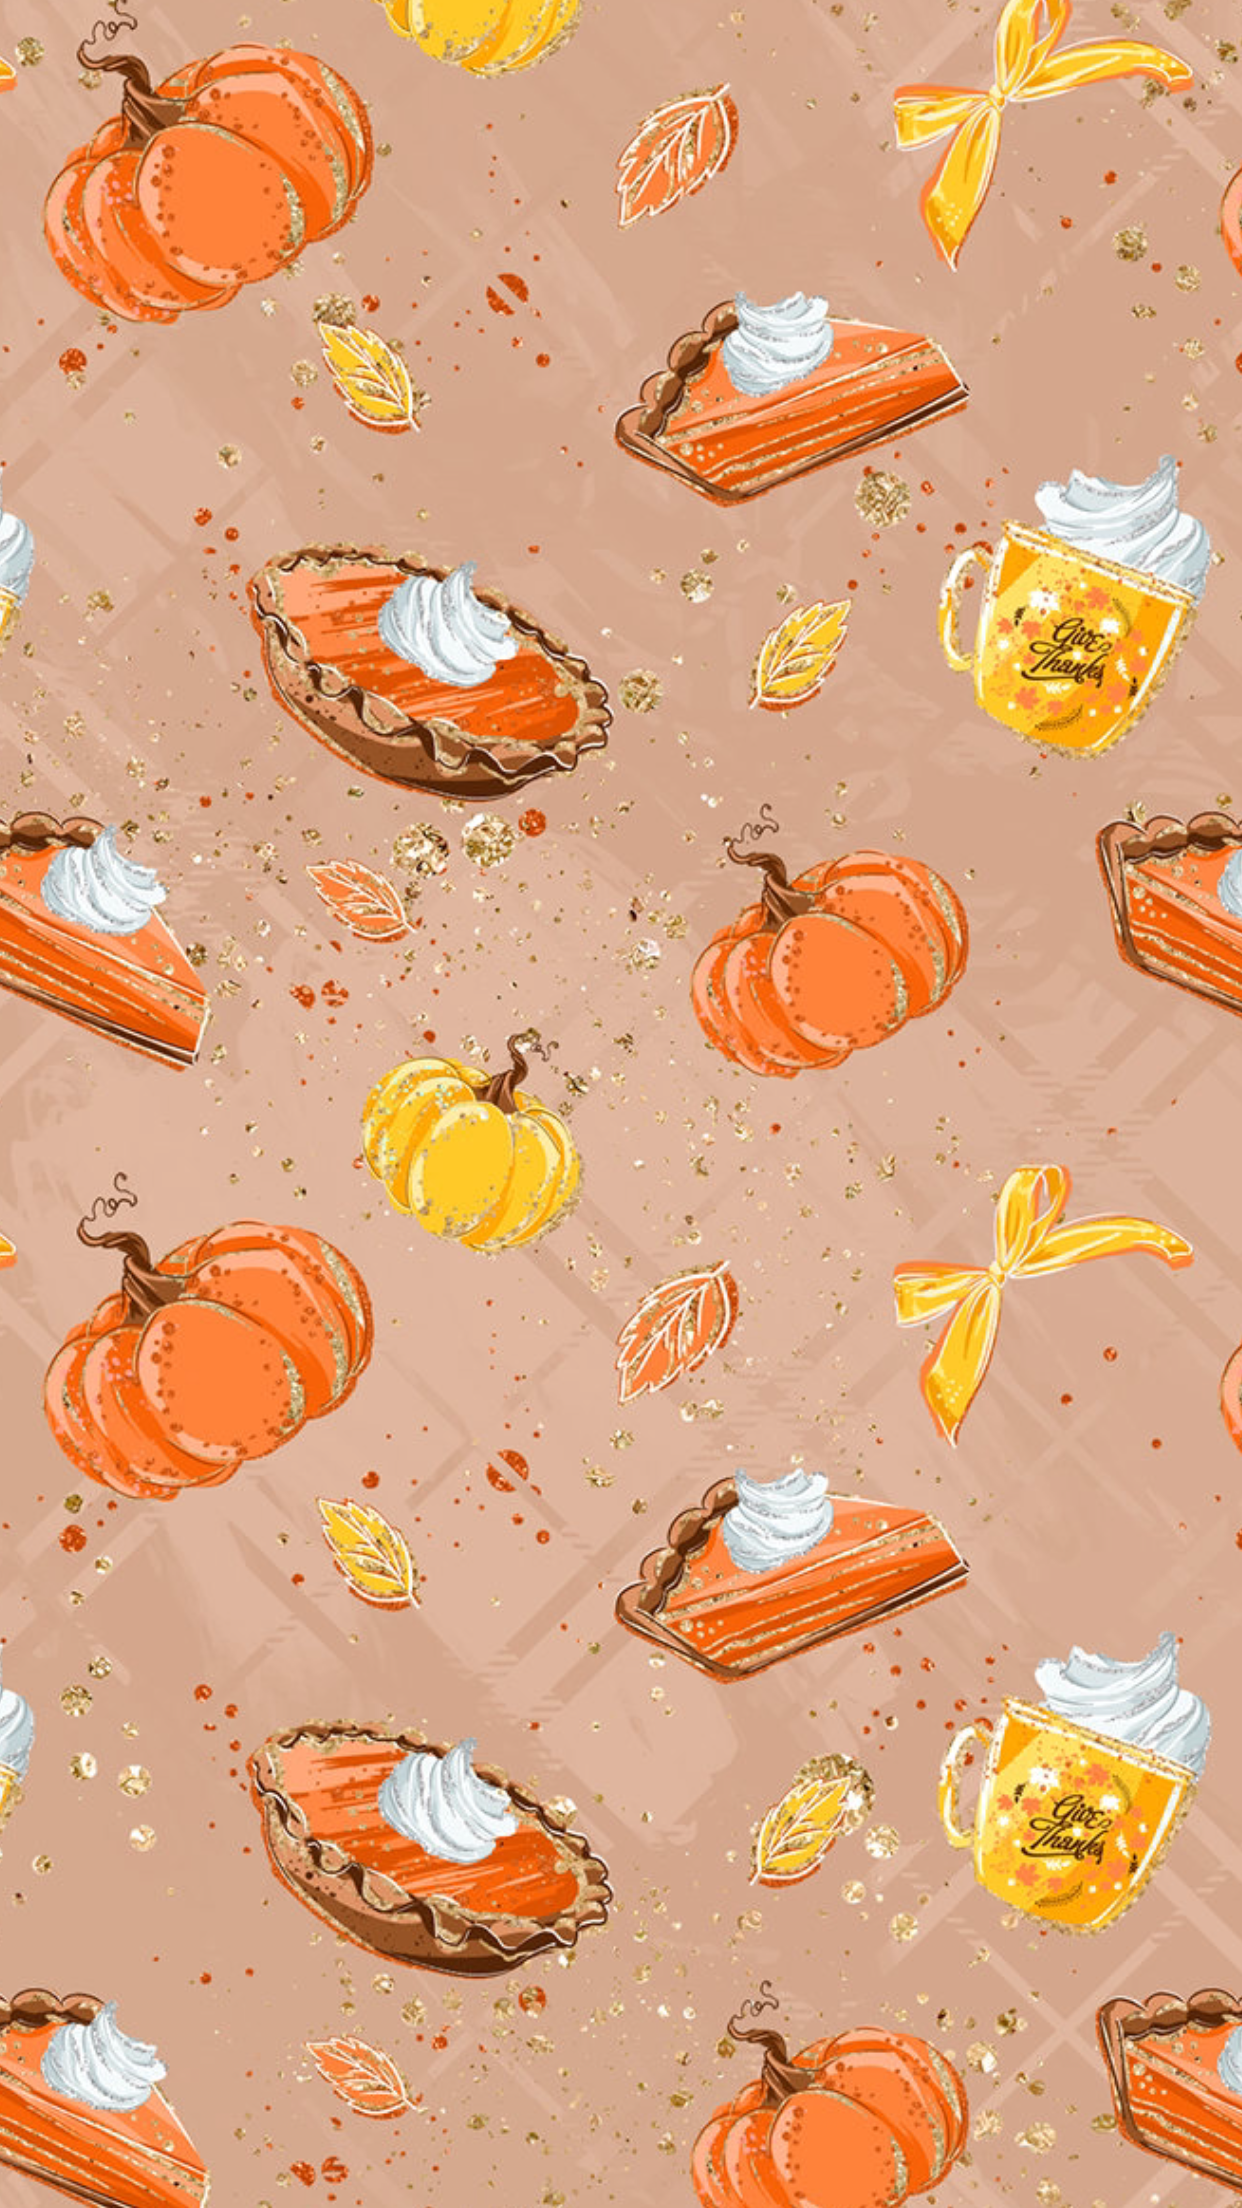 Pumpkin Pie Fall wallpaper, Thanksgiving wallpaper